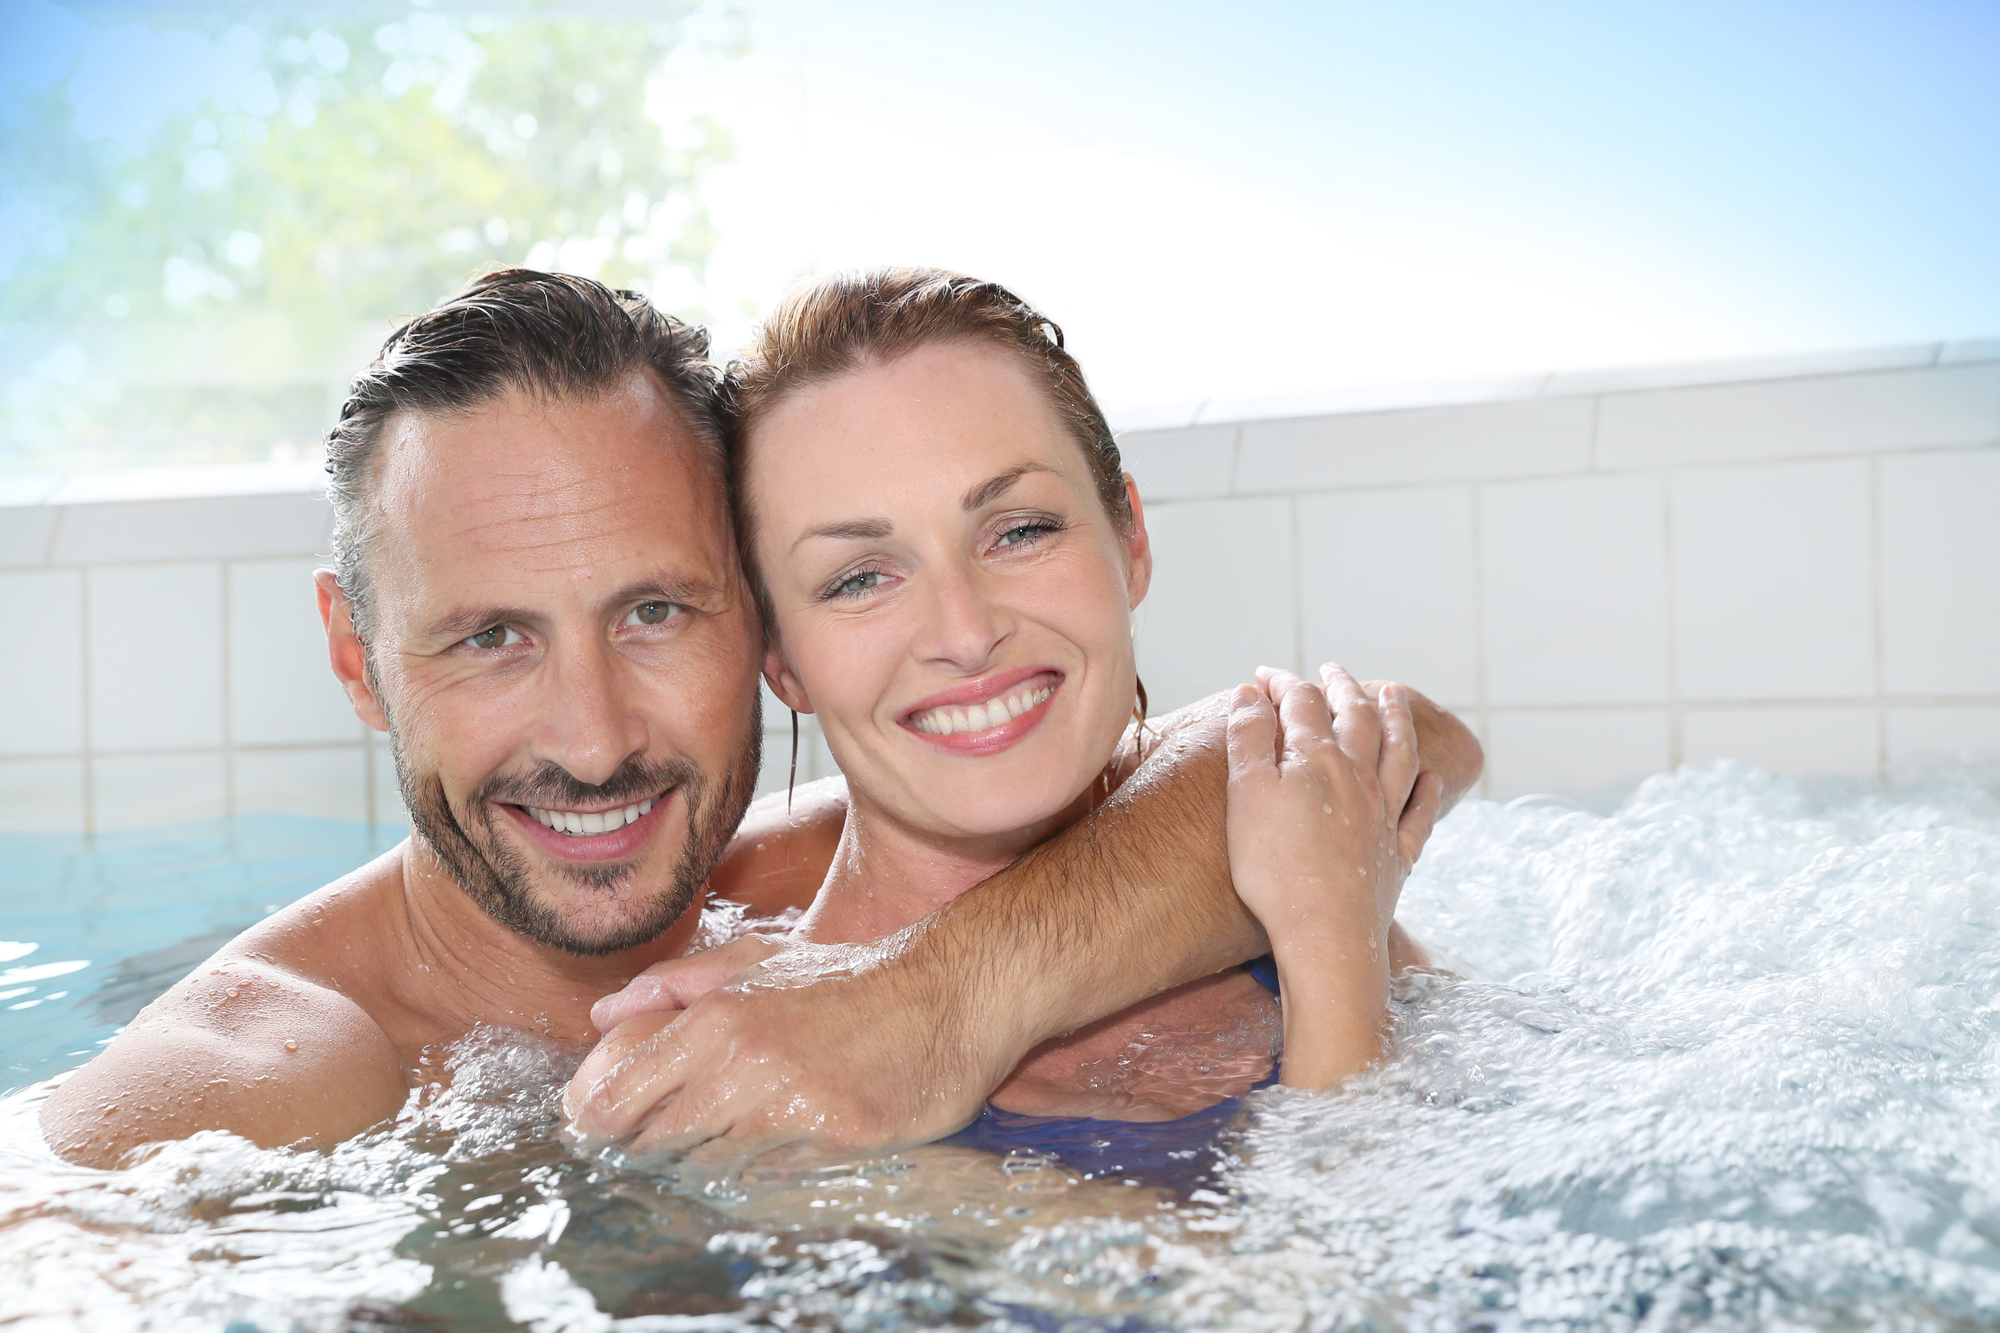 Buy Top Spas, Whirlpool Baths & Best Hot Tubs For 2 People